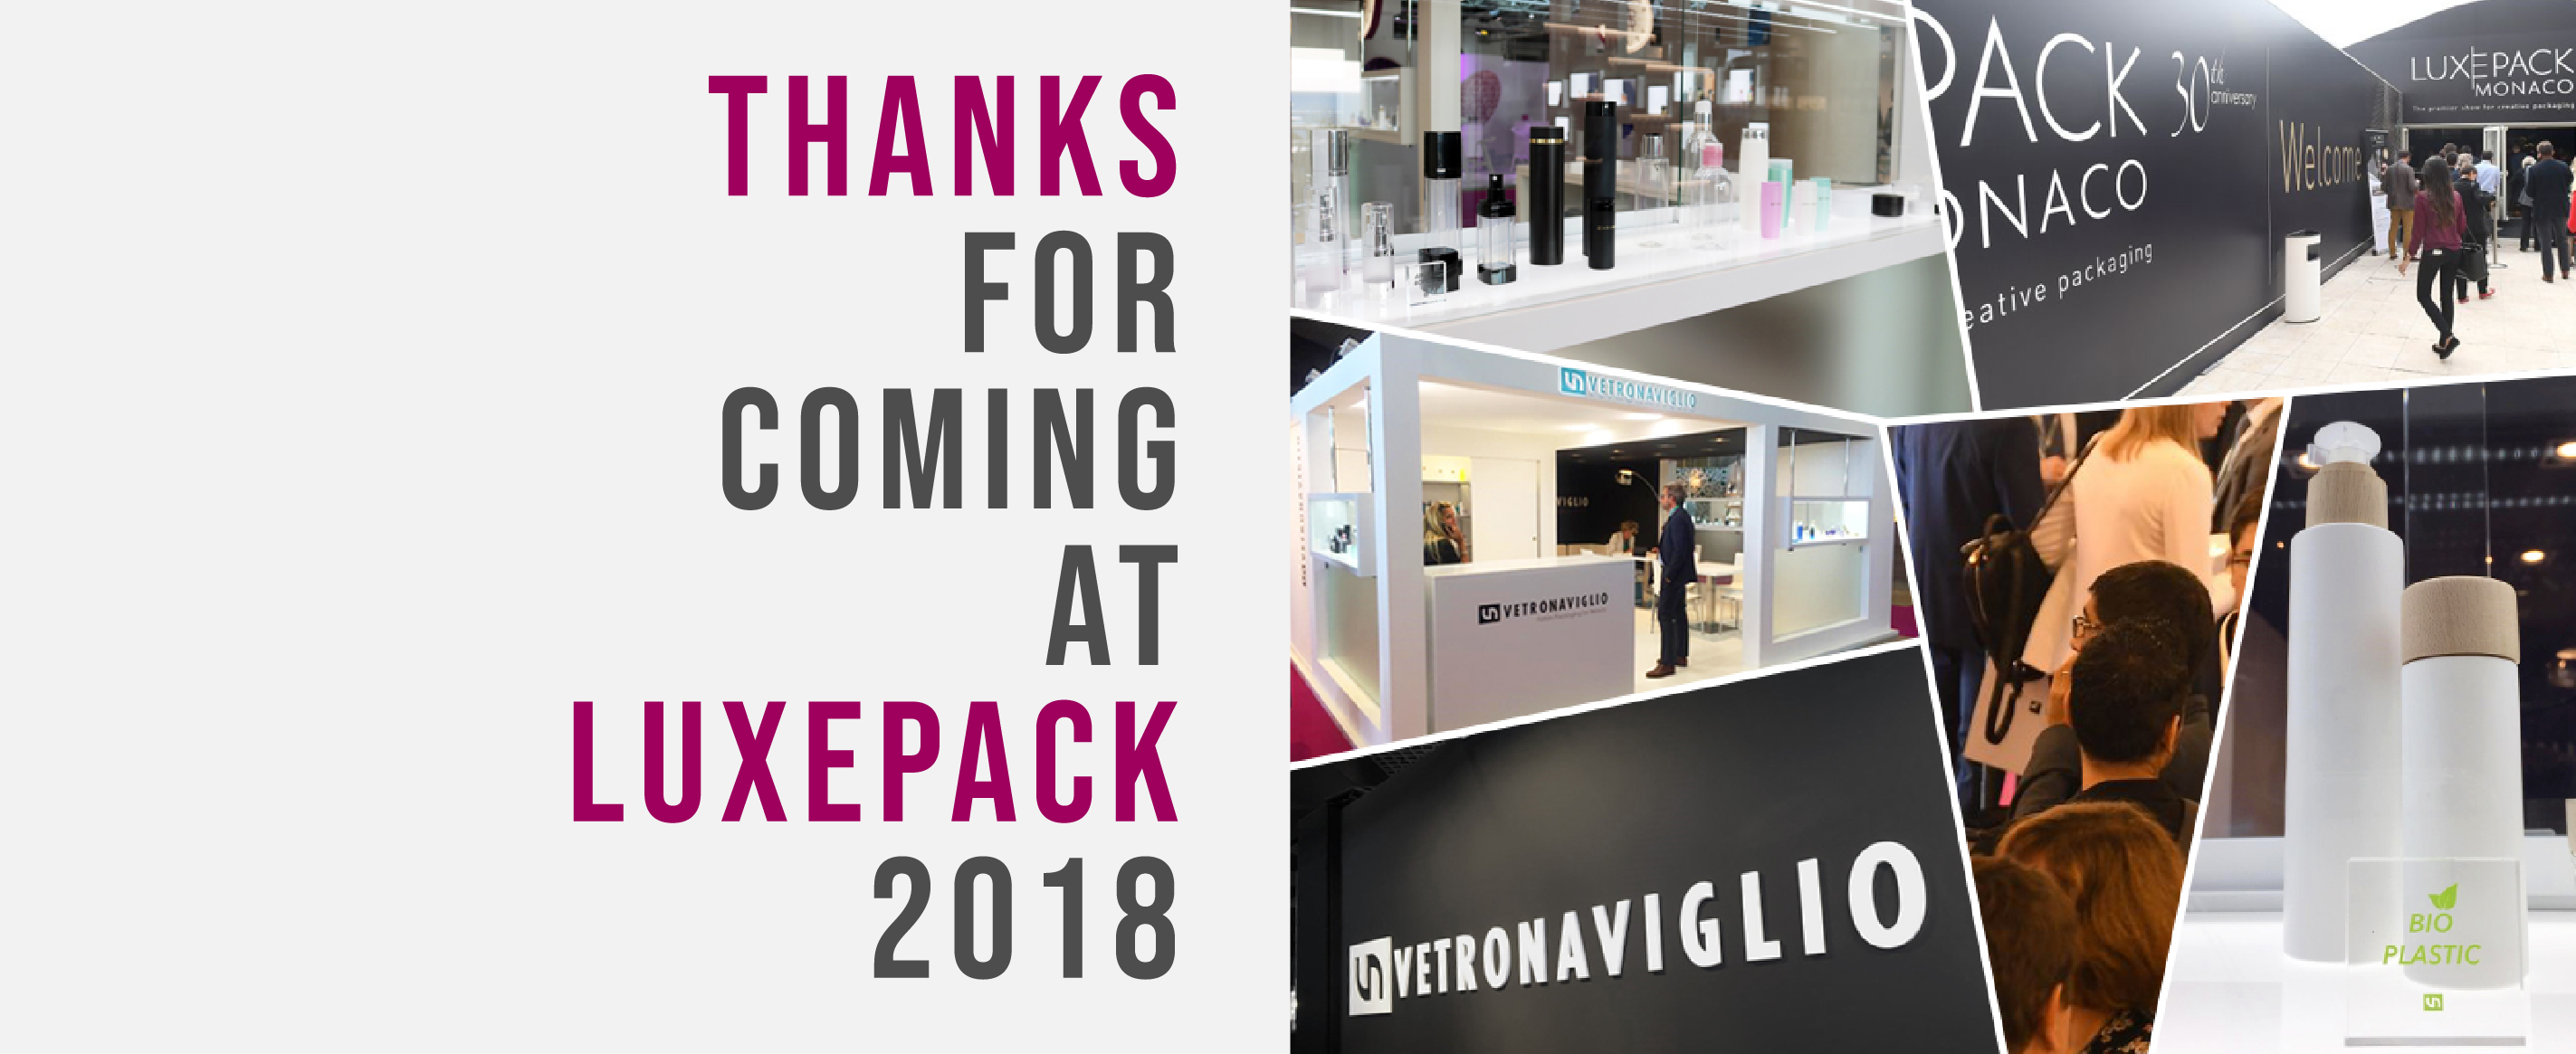 thank you for coming at luxepack 2018